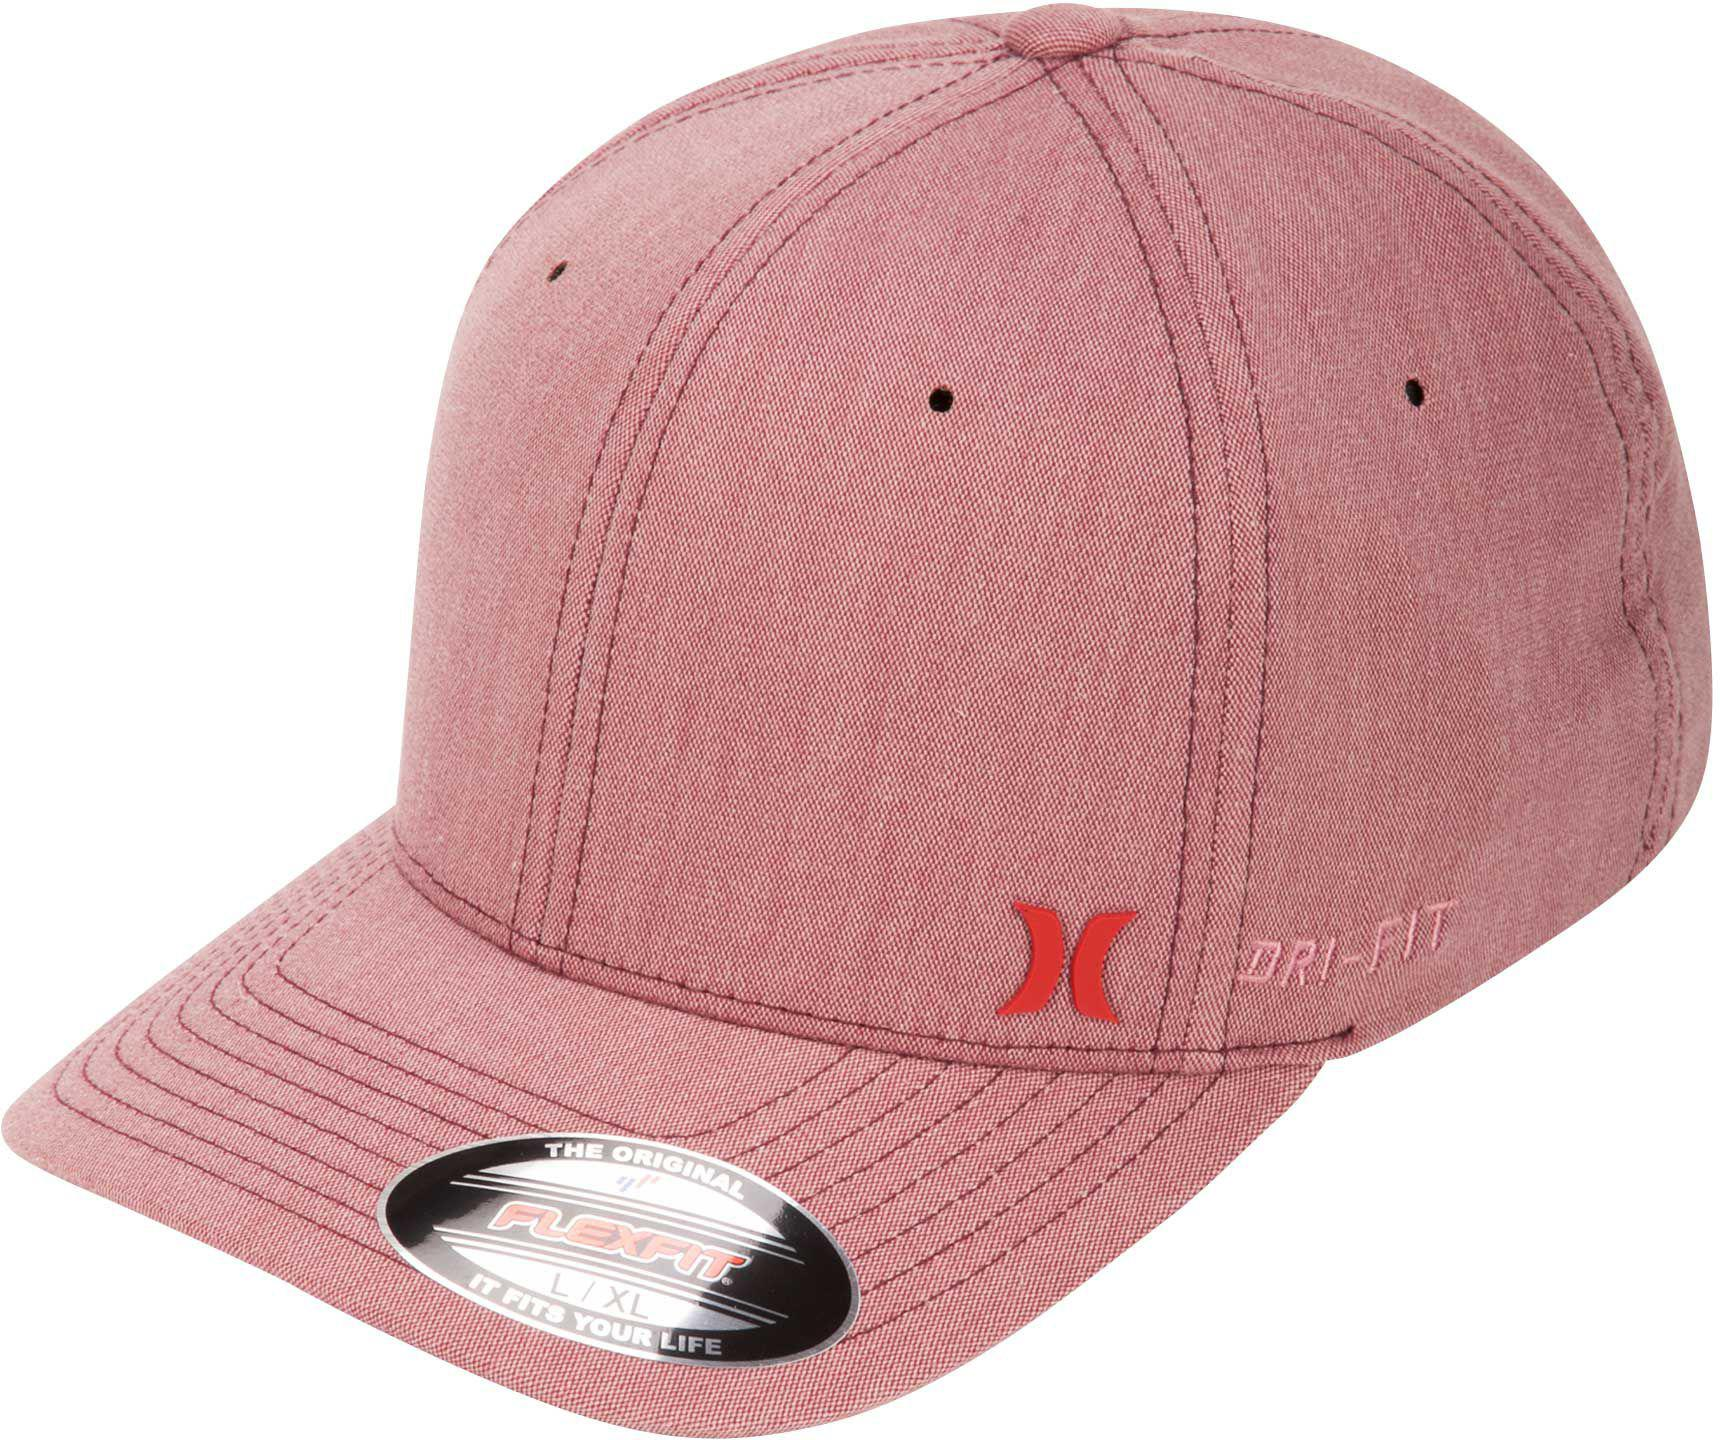 pretty nice 057a1 22e68 ... free shipping lyst hurley dri fit flow flexfit hat in pink for men  7a28c 7292a